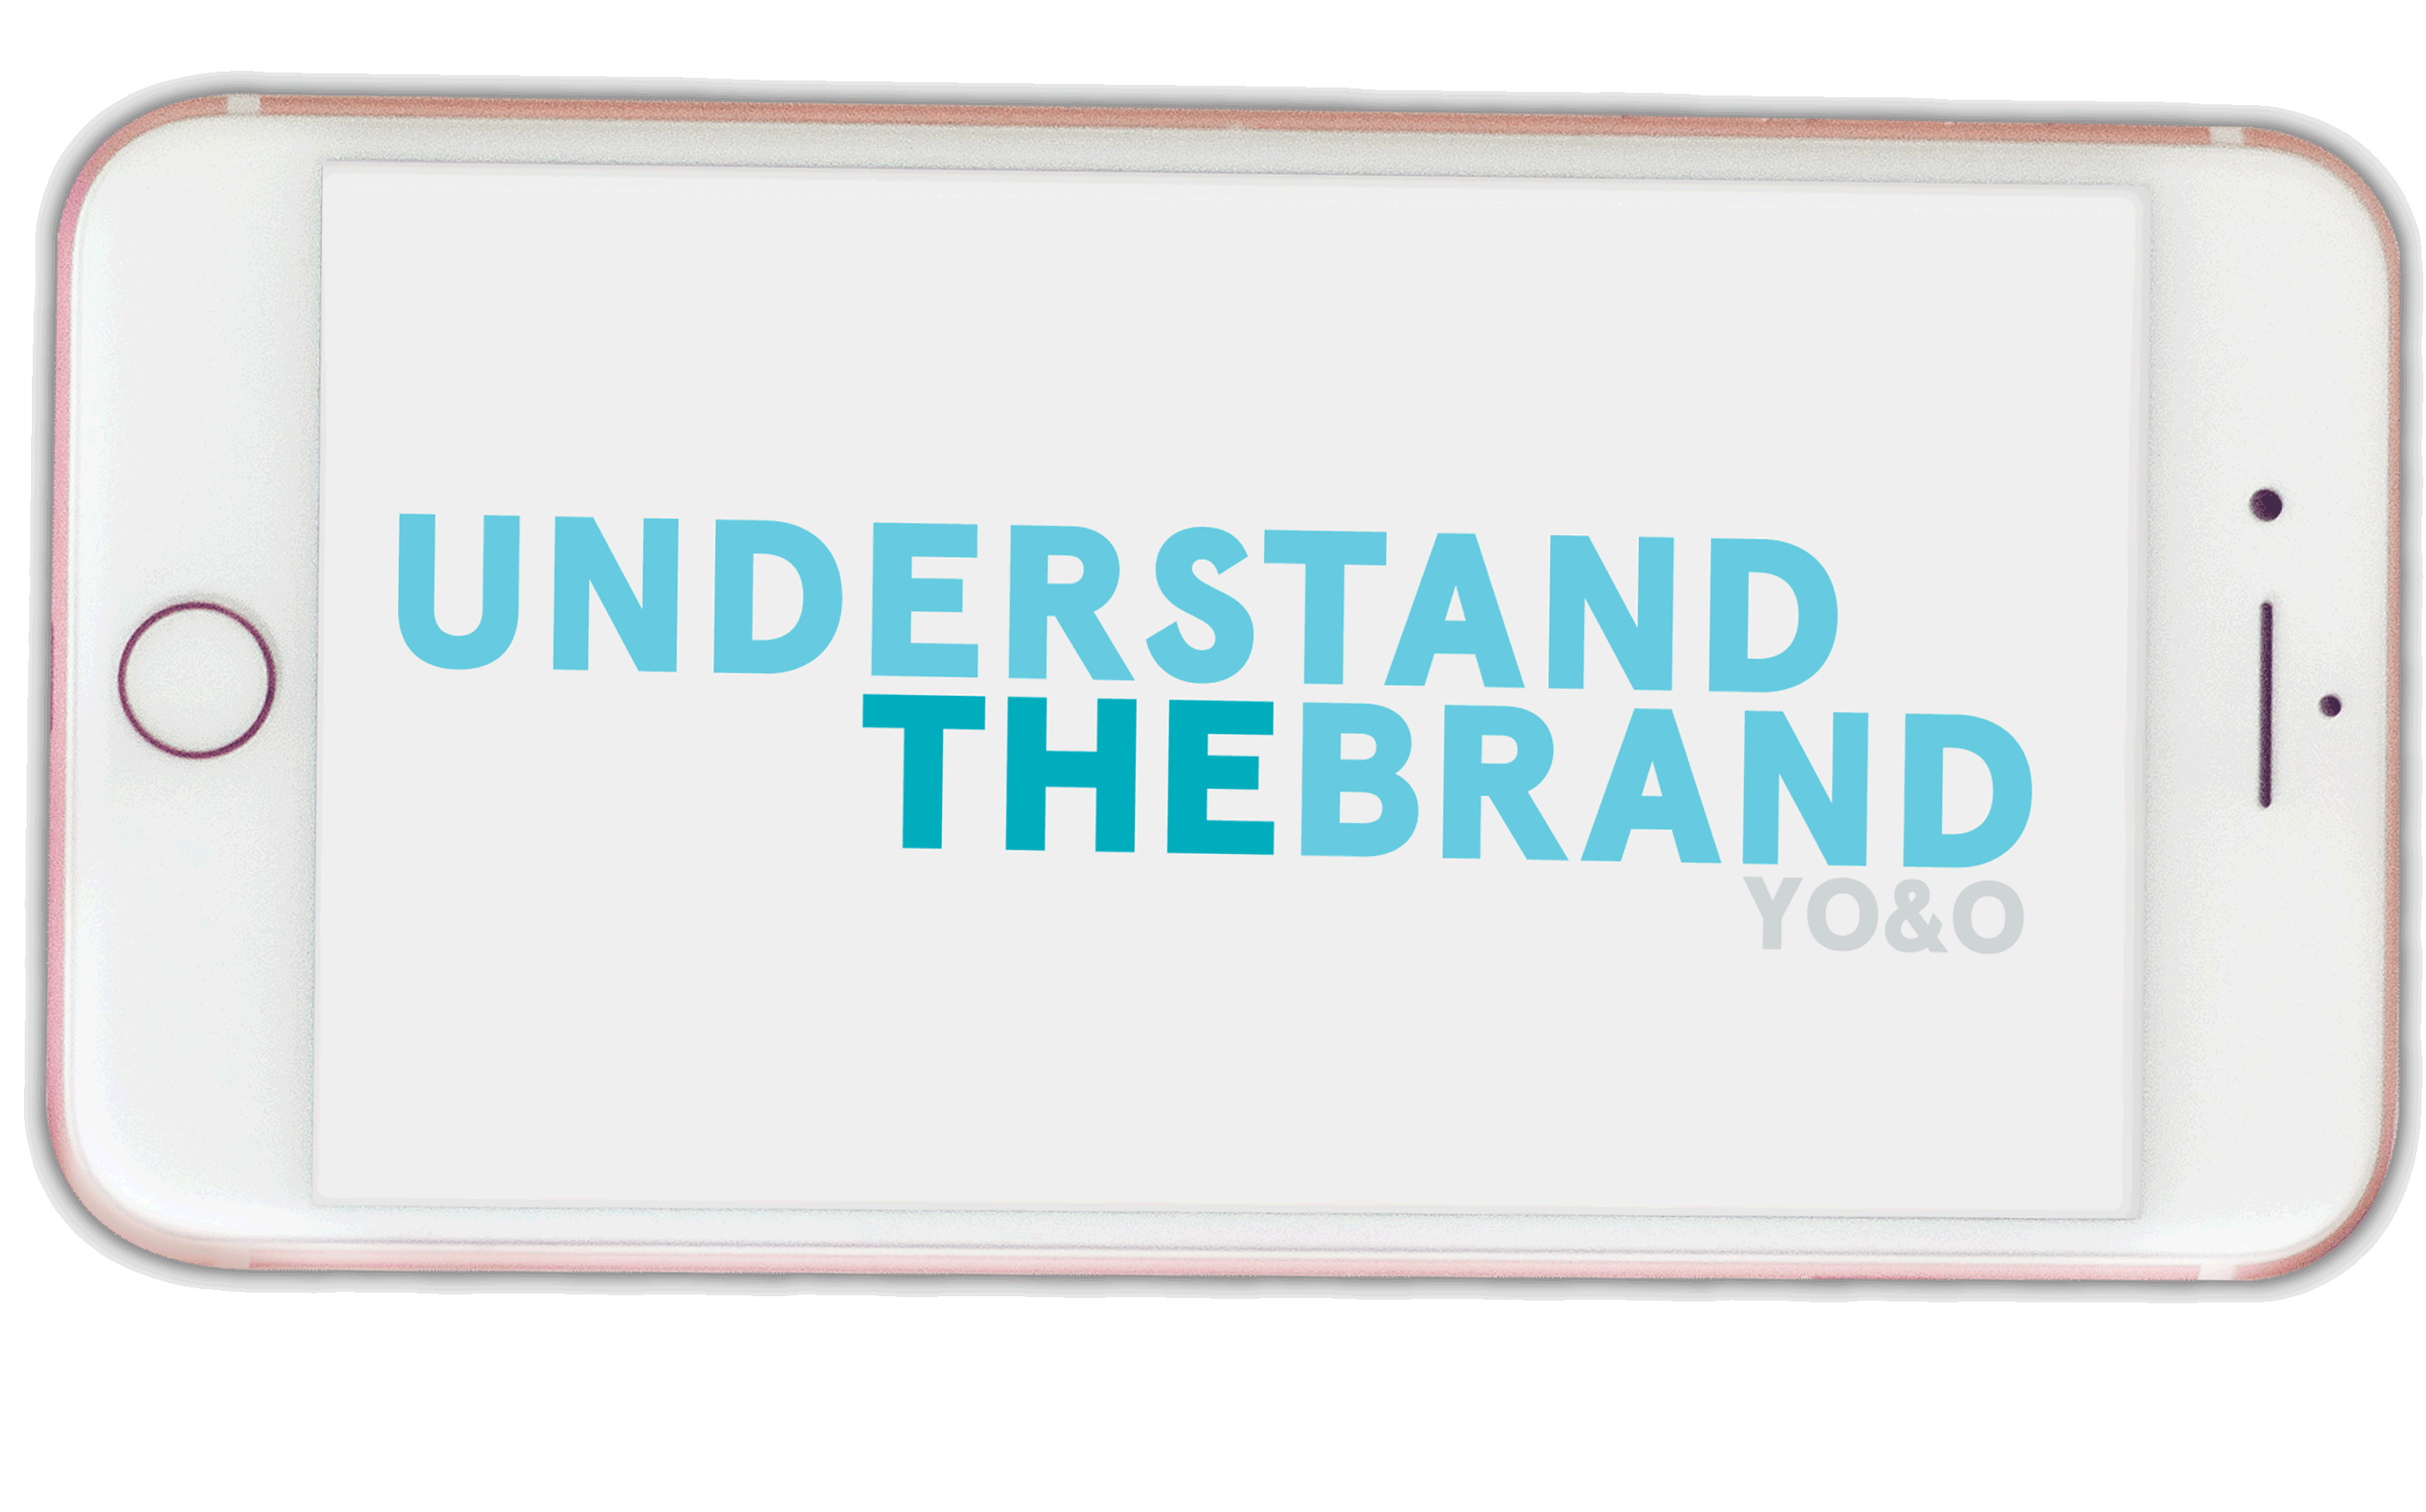 Understand The Brand course by YO&O